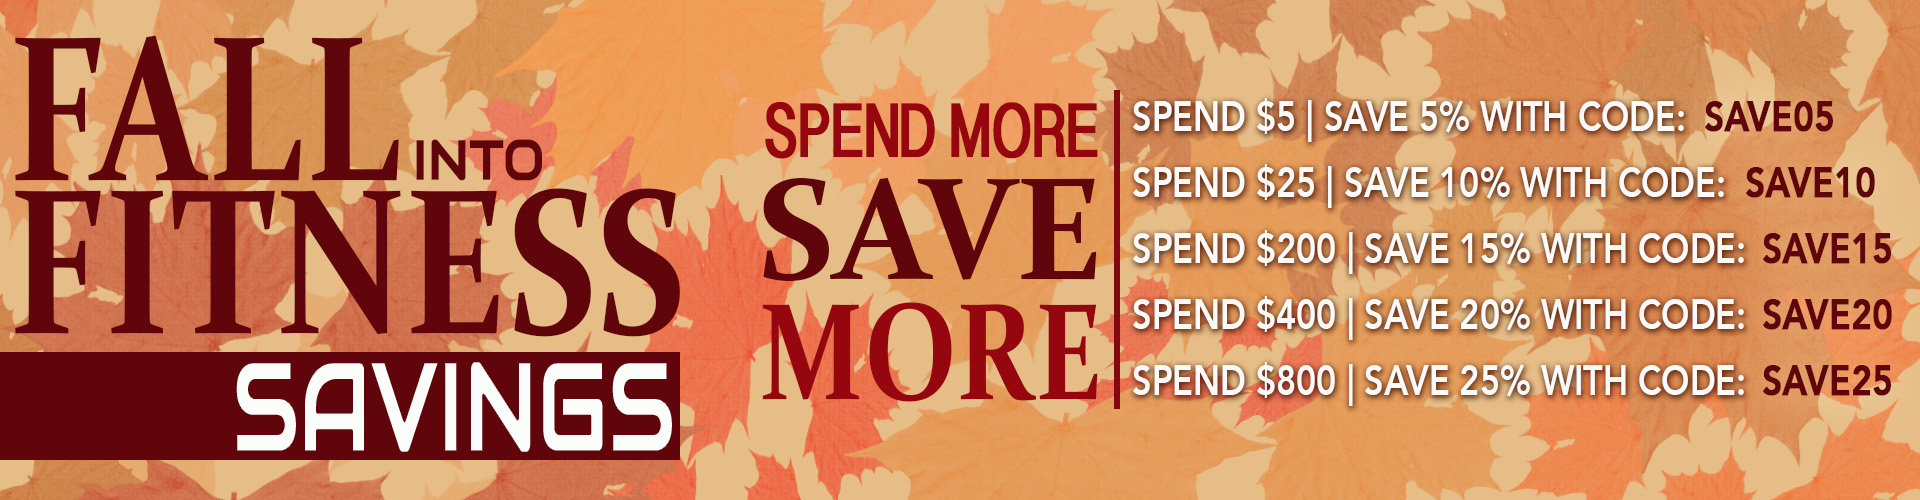 Fall into Fitness Savings - Spend More Save More. Spend $5.00, Save 5%, Spend $25.00, Save 10%, Spend $200.00, Save 15%, Spend $400.00, Save 20%, Spend $800.00, Save 25% with Coupon Codes.